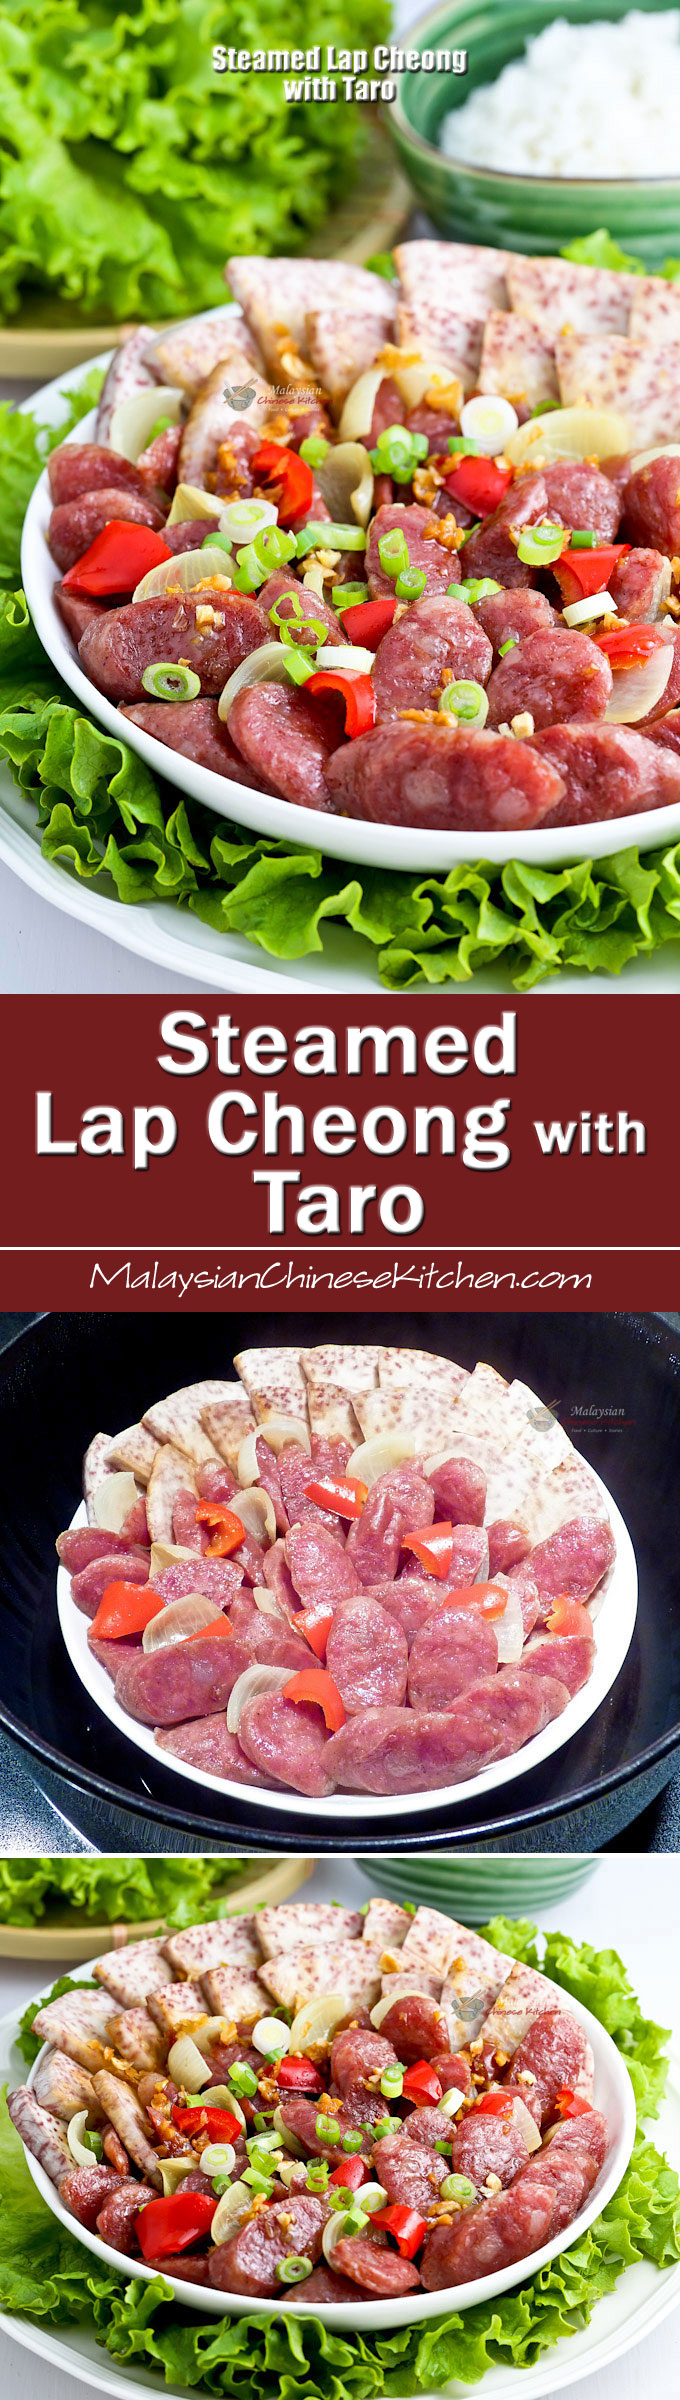 Steamed Lap Cheong and Taro is a simple home style dish that is quick and easy to prepare. Very tasty and delicious served with steamed rice.   MalaysianChineseKitchen.com